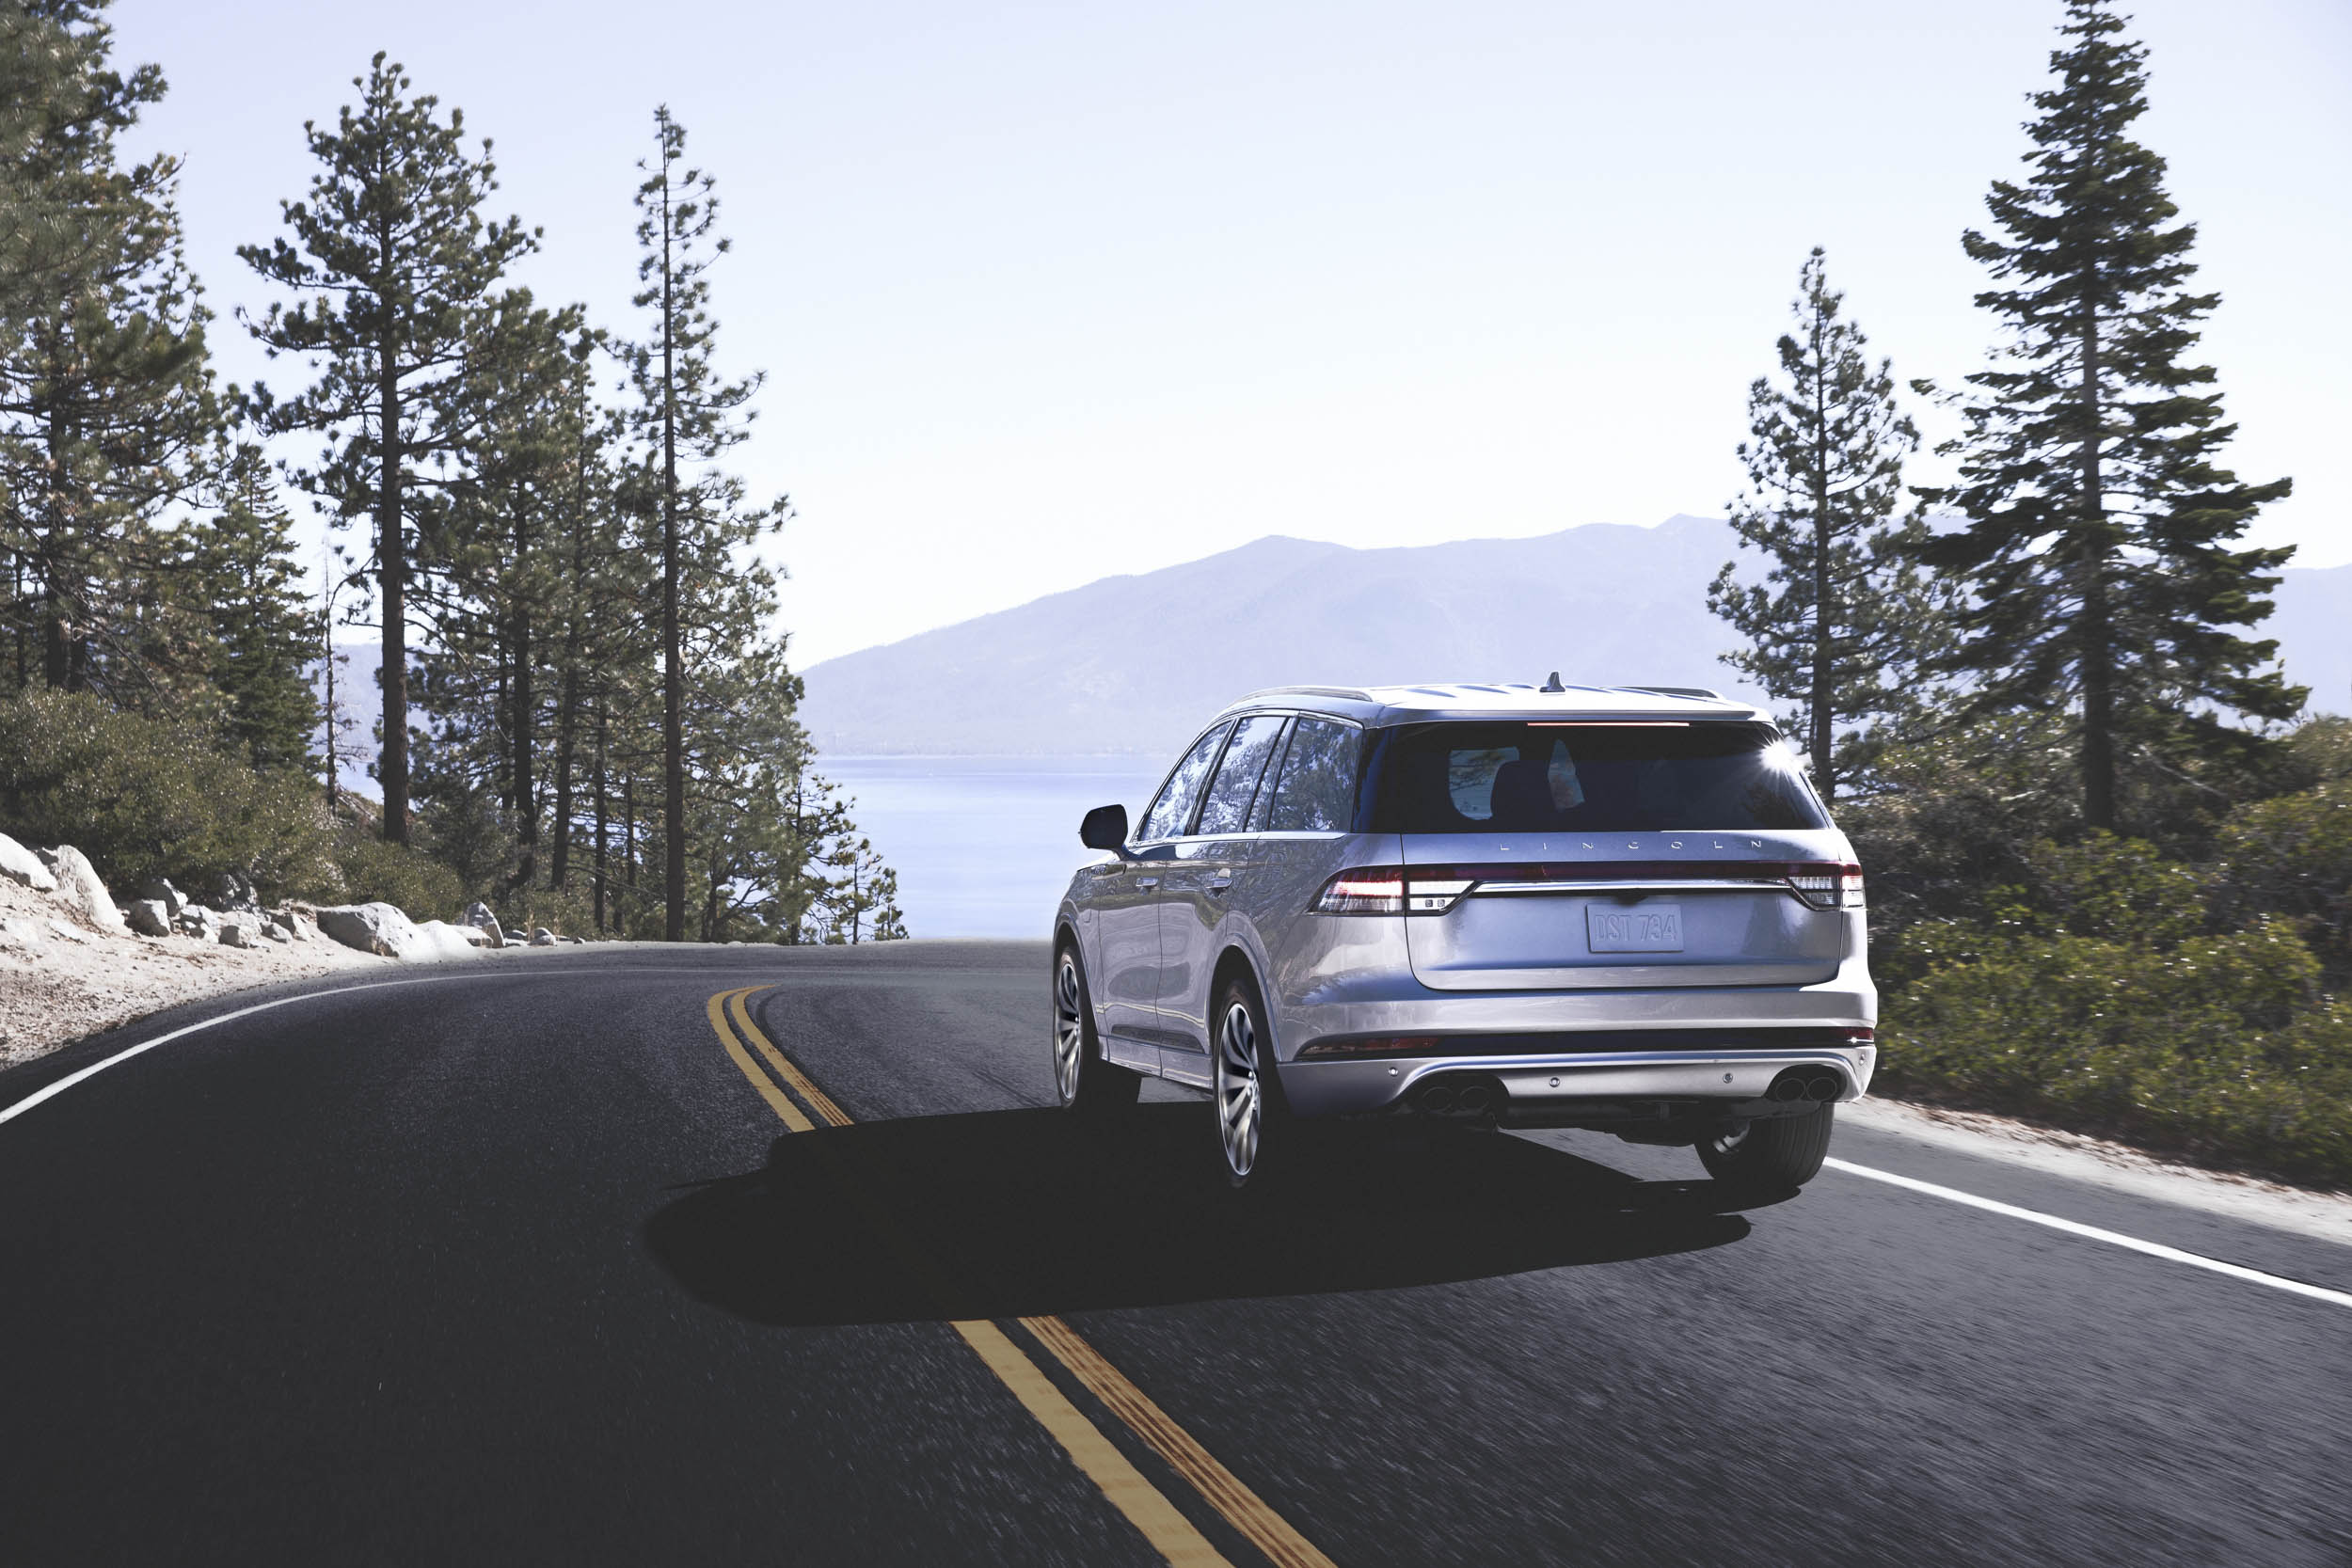 2020 Lincoln Aviator driving rear